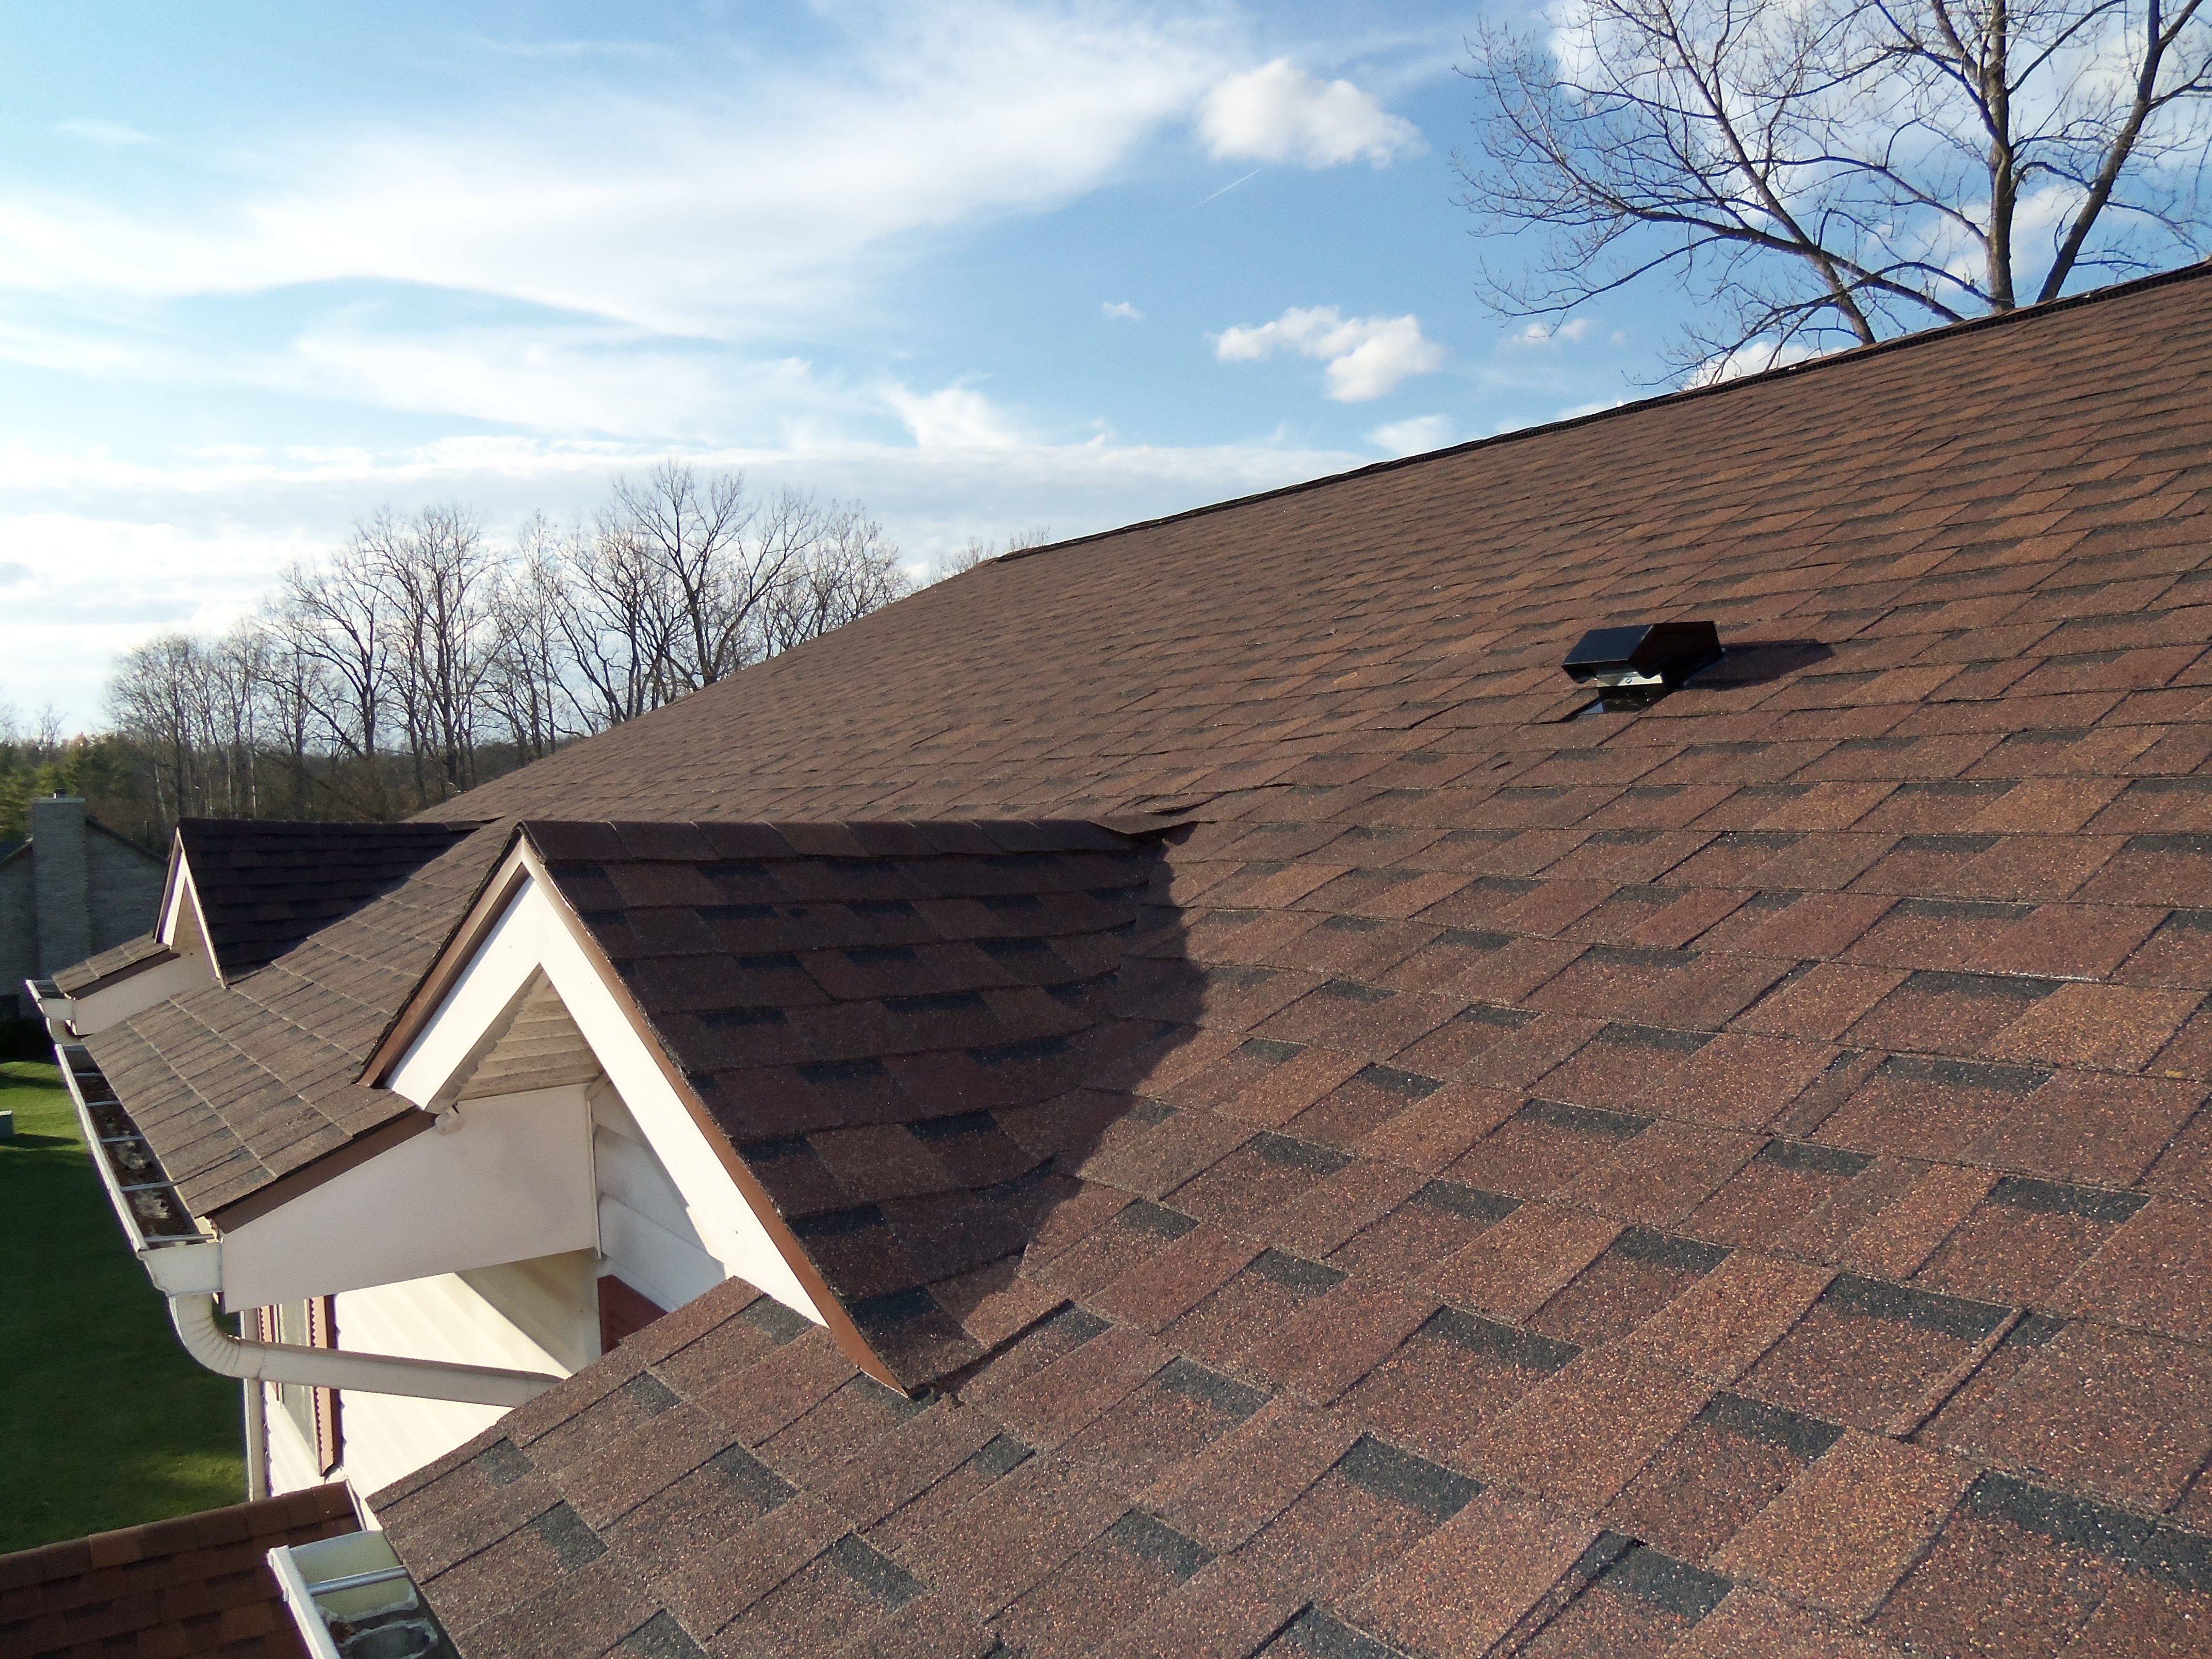 Roofing Company Of Dayton Ohio Thrush Son Complete Home Improvement Shingling Roofing Roof Shingles